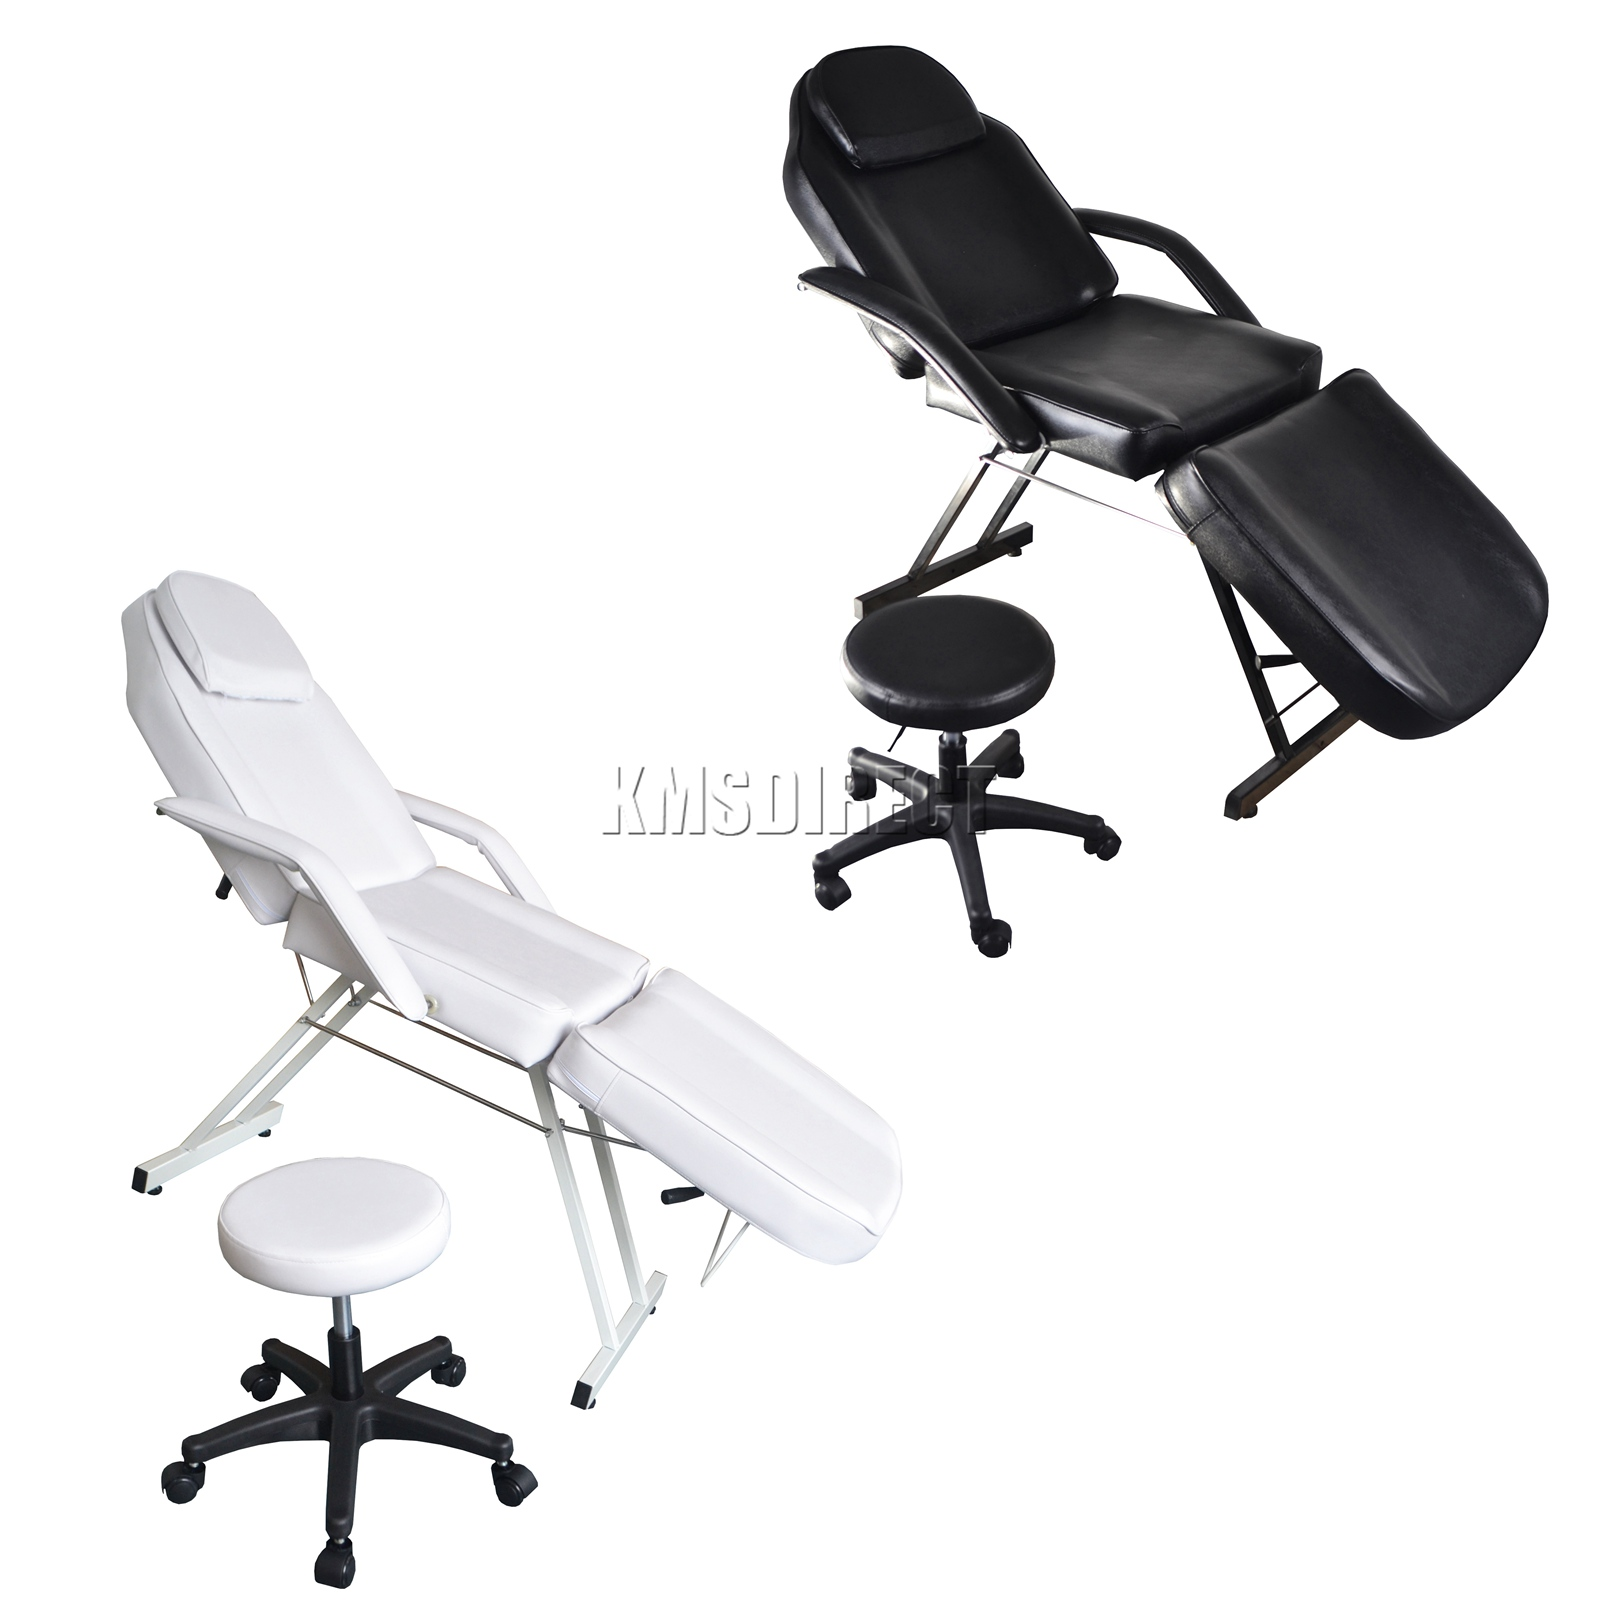 massage chair ebay. sentinel foxhunter beauty salon chair massage table tattoo facial therapy couch bed stool ebay b